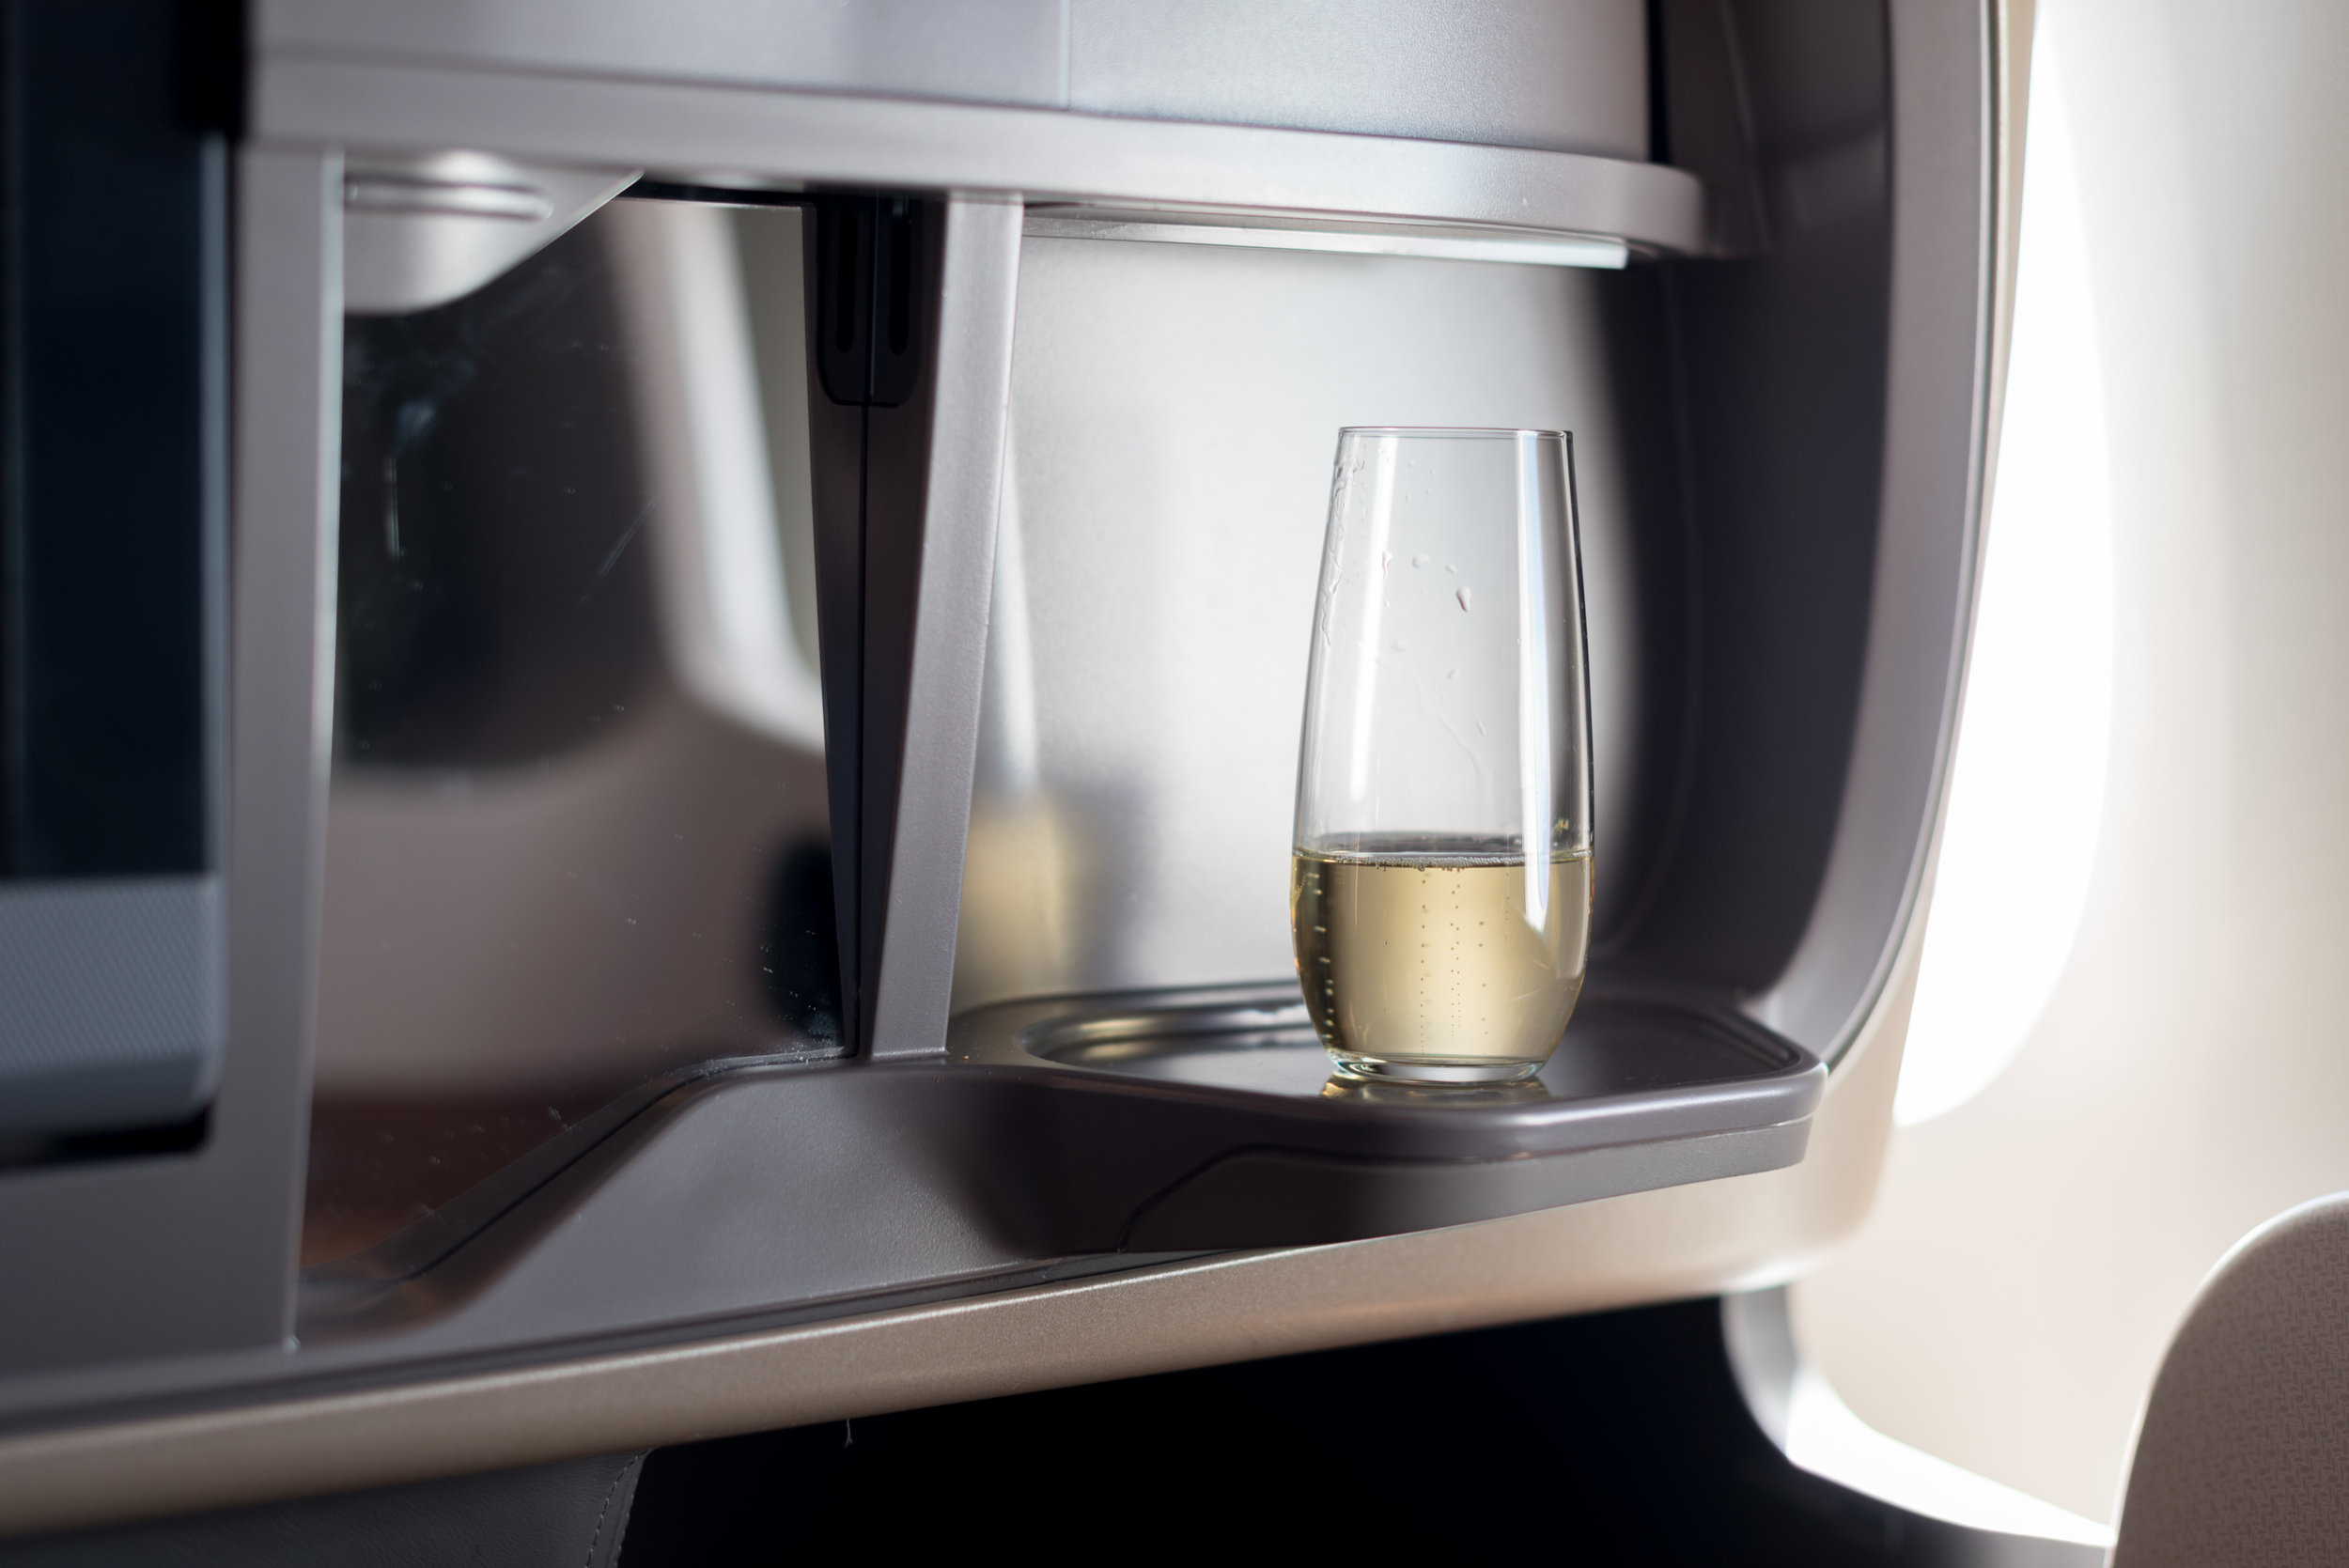 Charles Heidsieck Brut Reserve Champagne  Singapore Airlines SQ856 Business - SIN to HKG